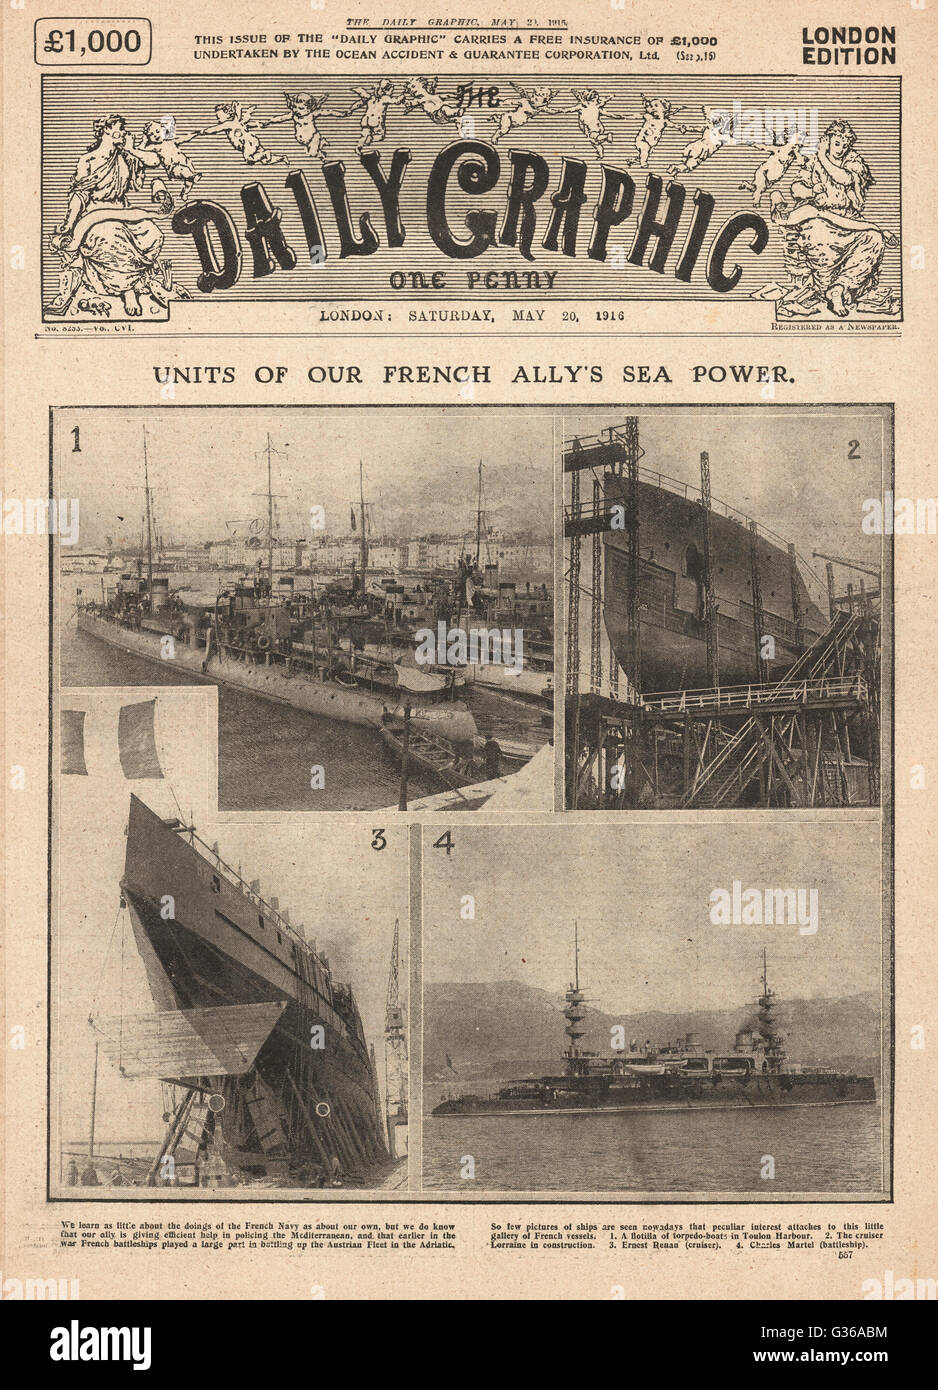 1916 Daily Graphic front page Battleships of the French Navy - Stock Image